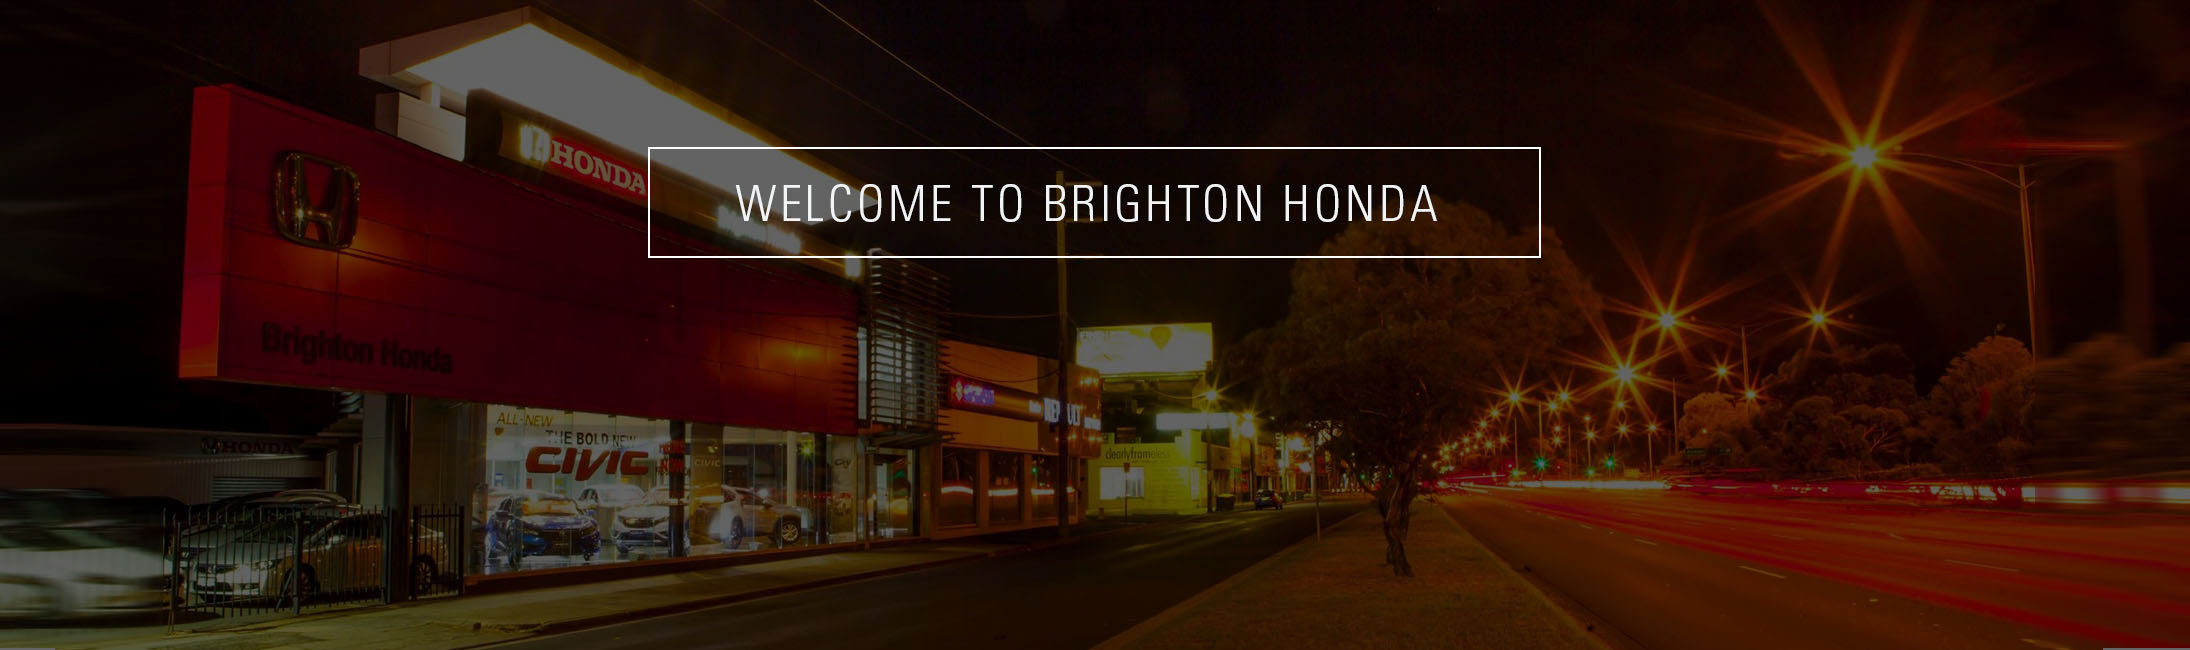 Brighton Honda Bentleigh Melbourne